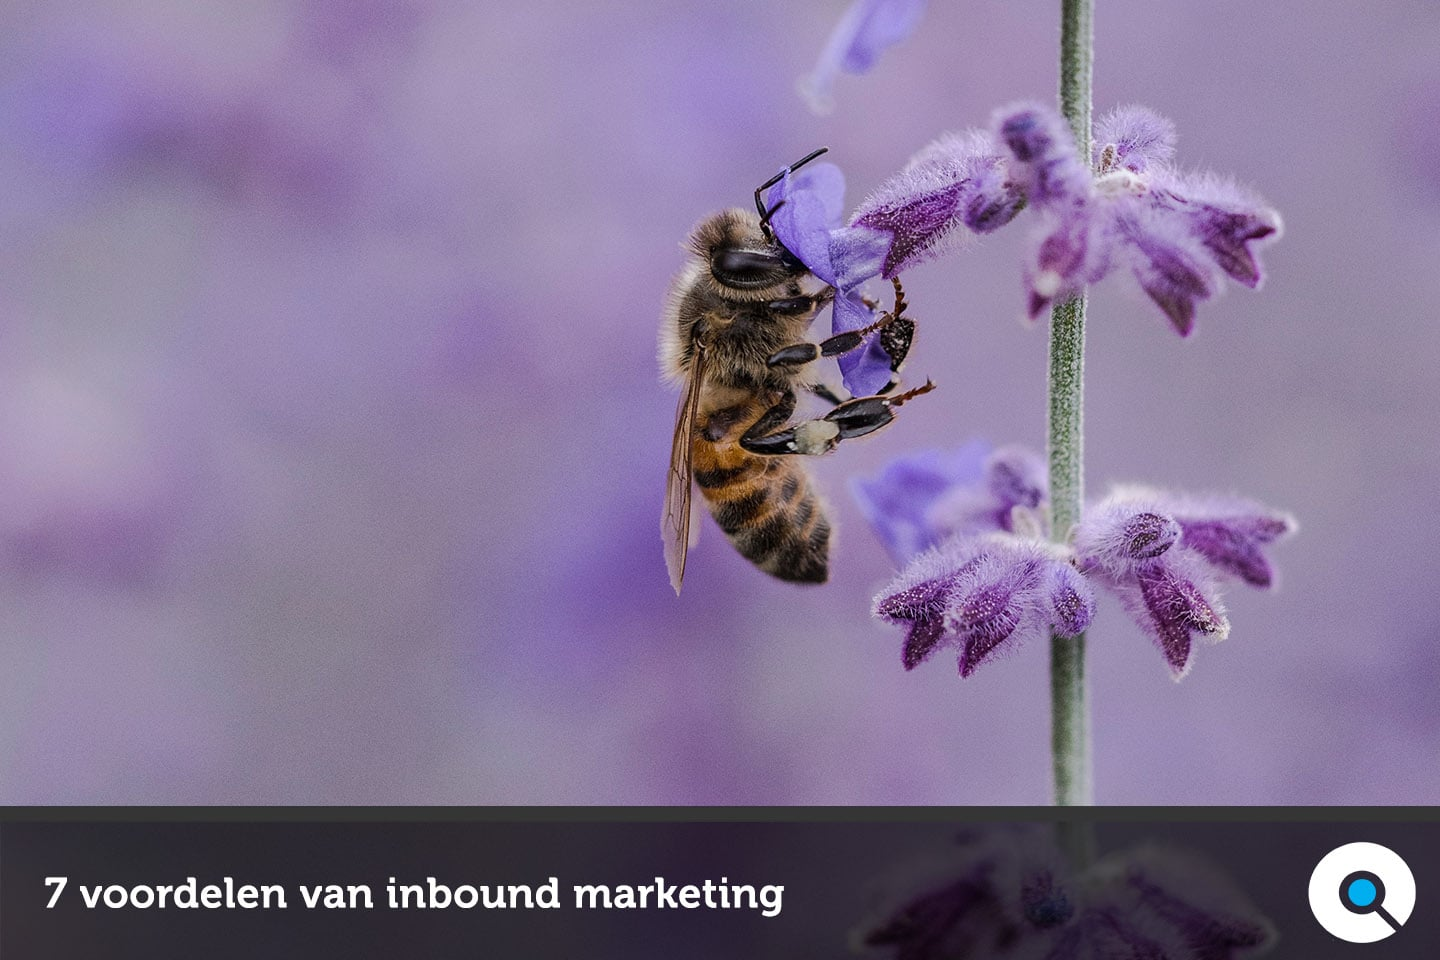 7 voordelen van inbound marketing - Lincelot - FI